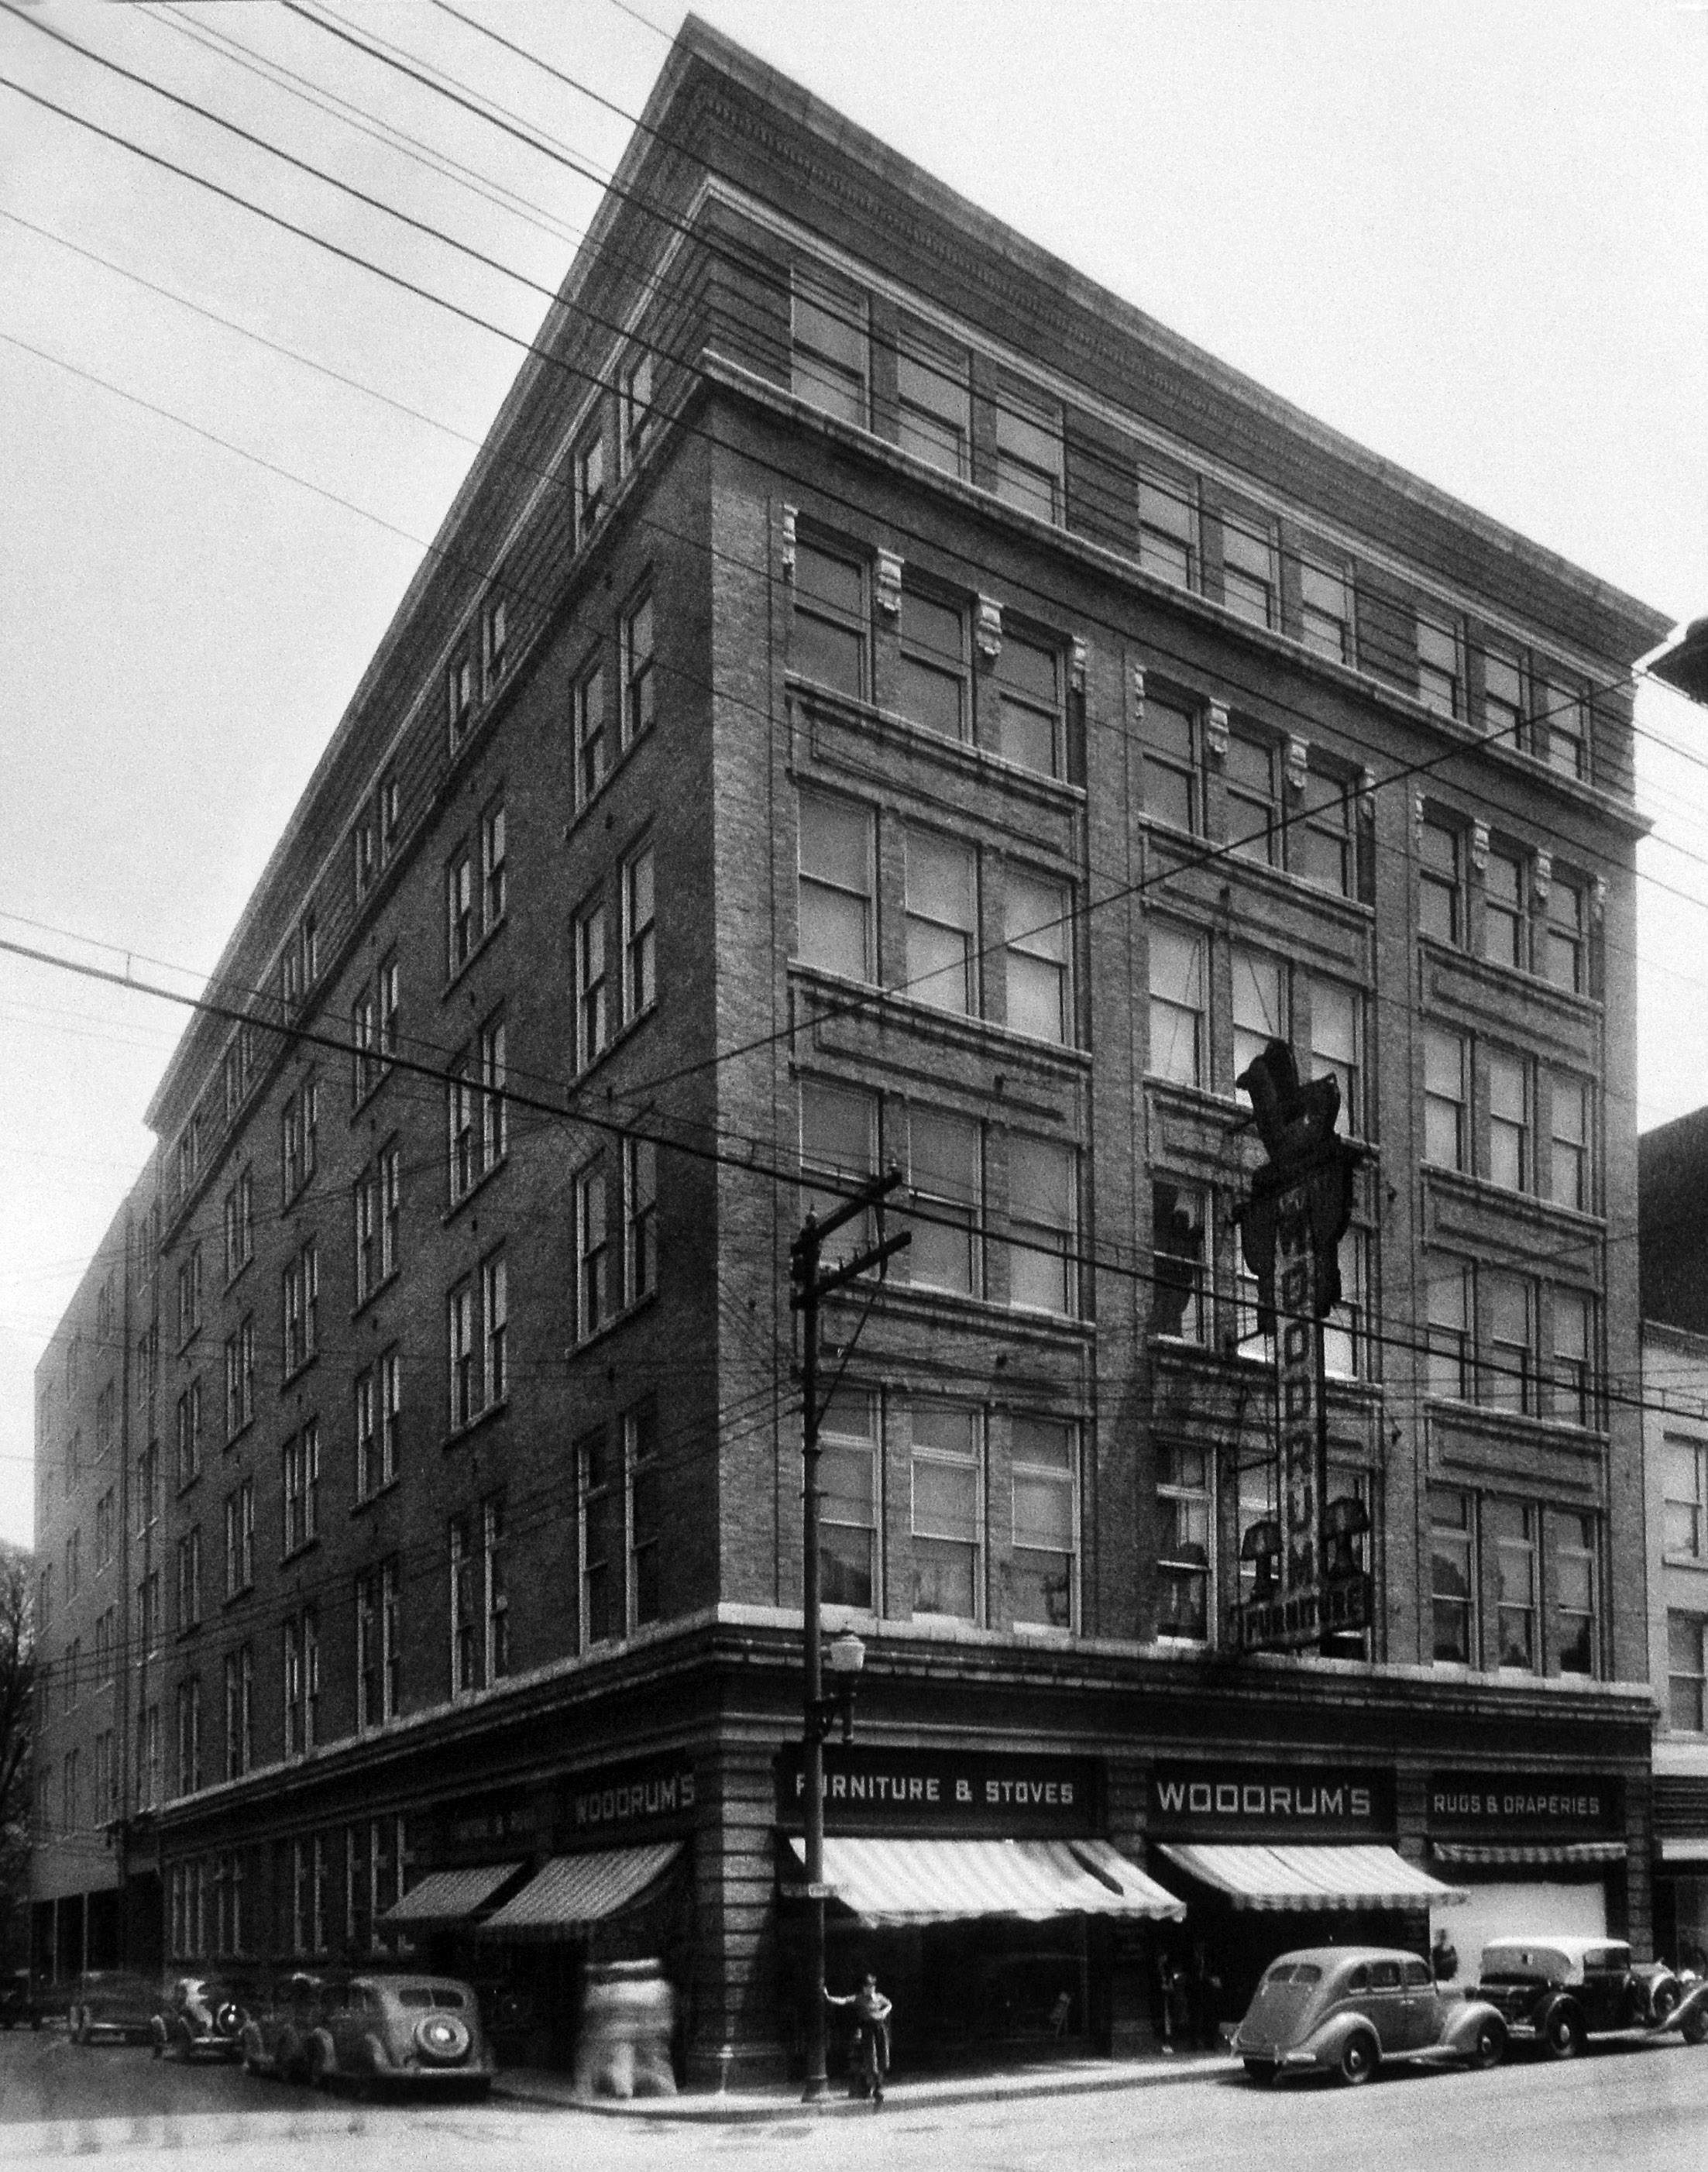 The newly constructed Woodrum's building in 1916.